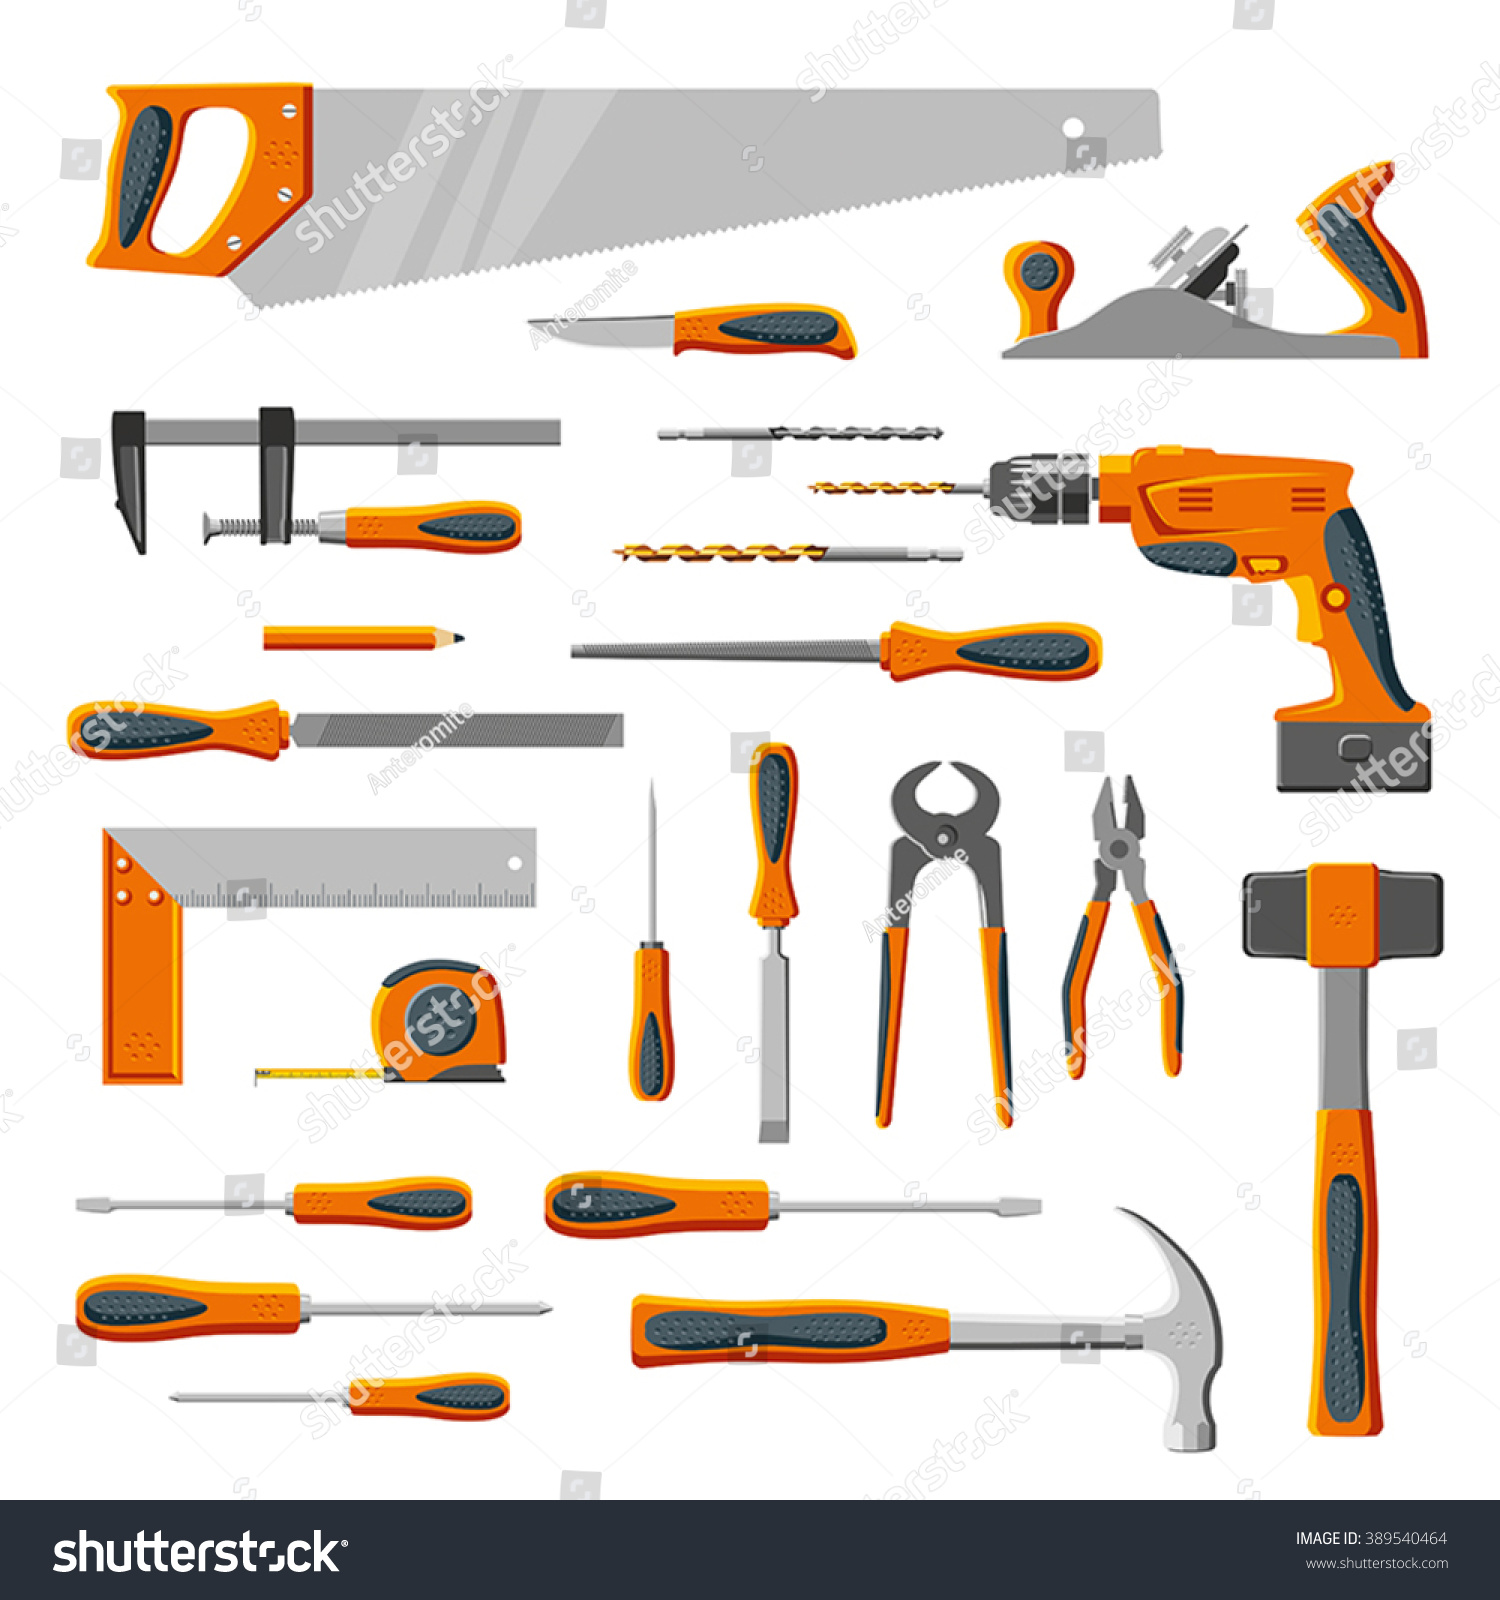 Modern Diy Carpenter Hand Tools Vector Stock Vector 389540464 ...